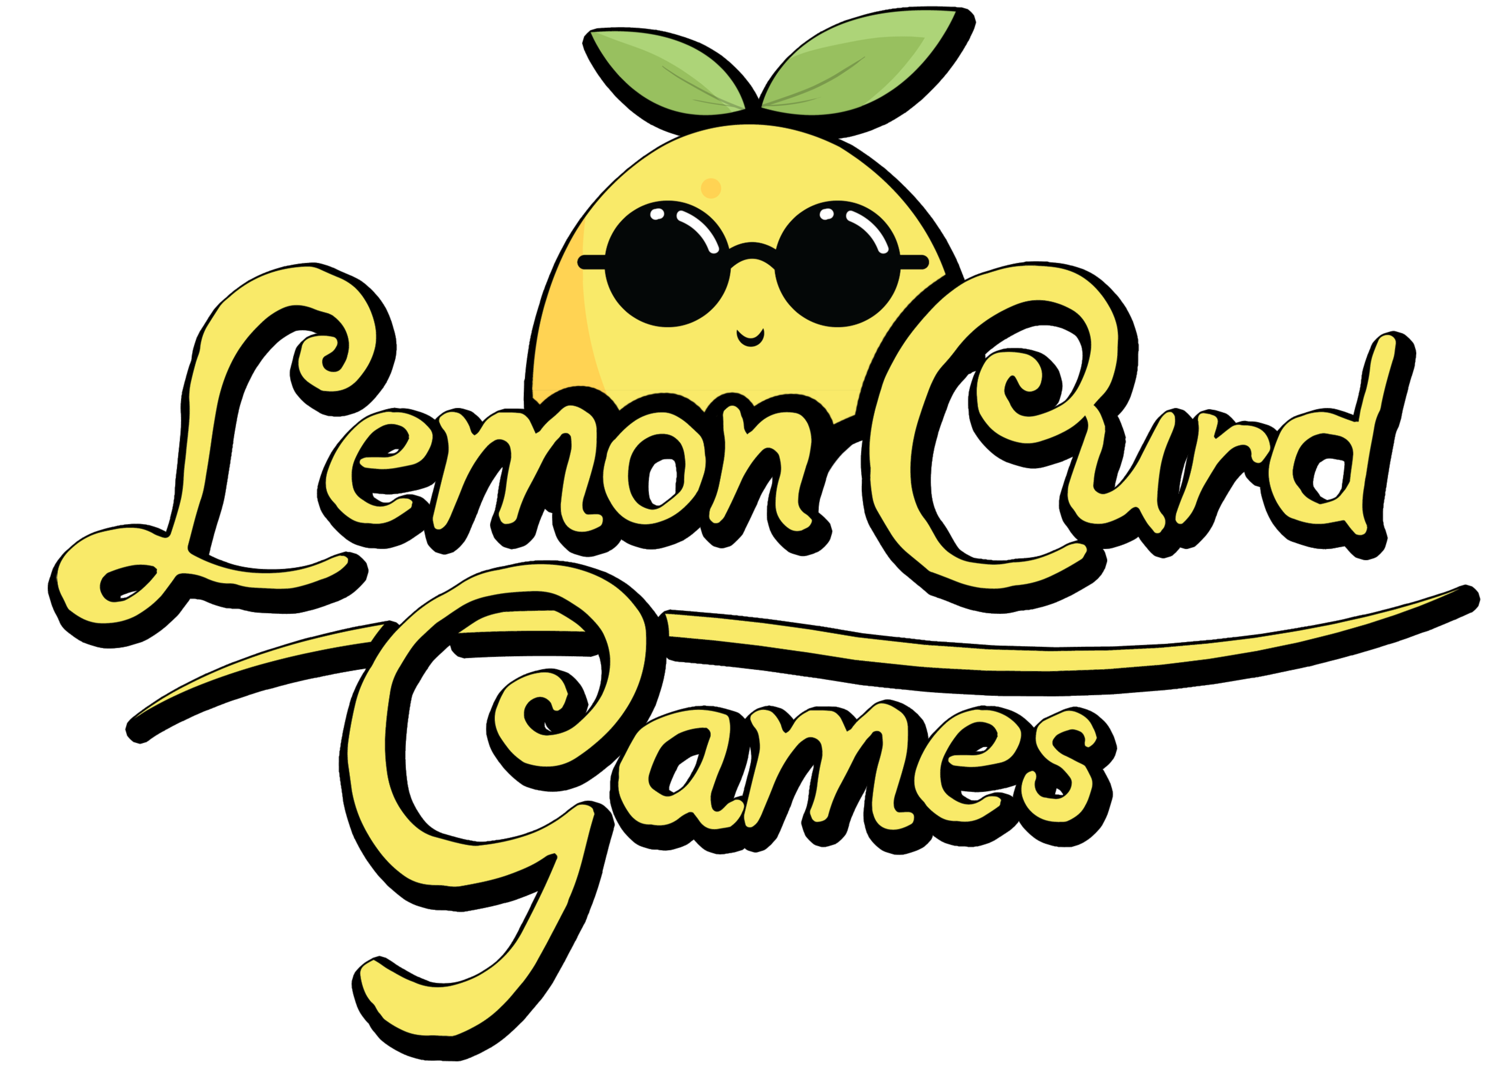 Lemon Curd Games